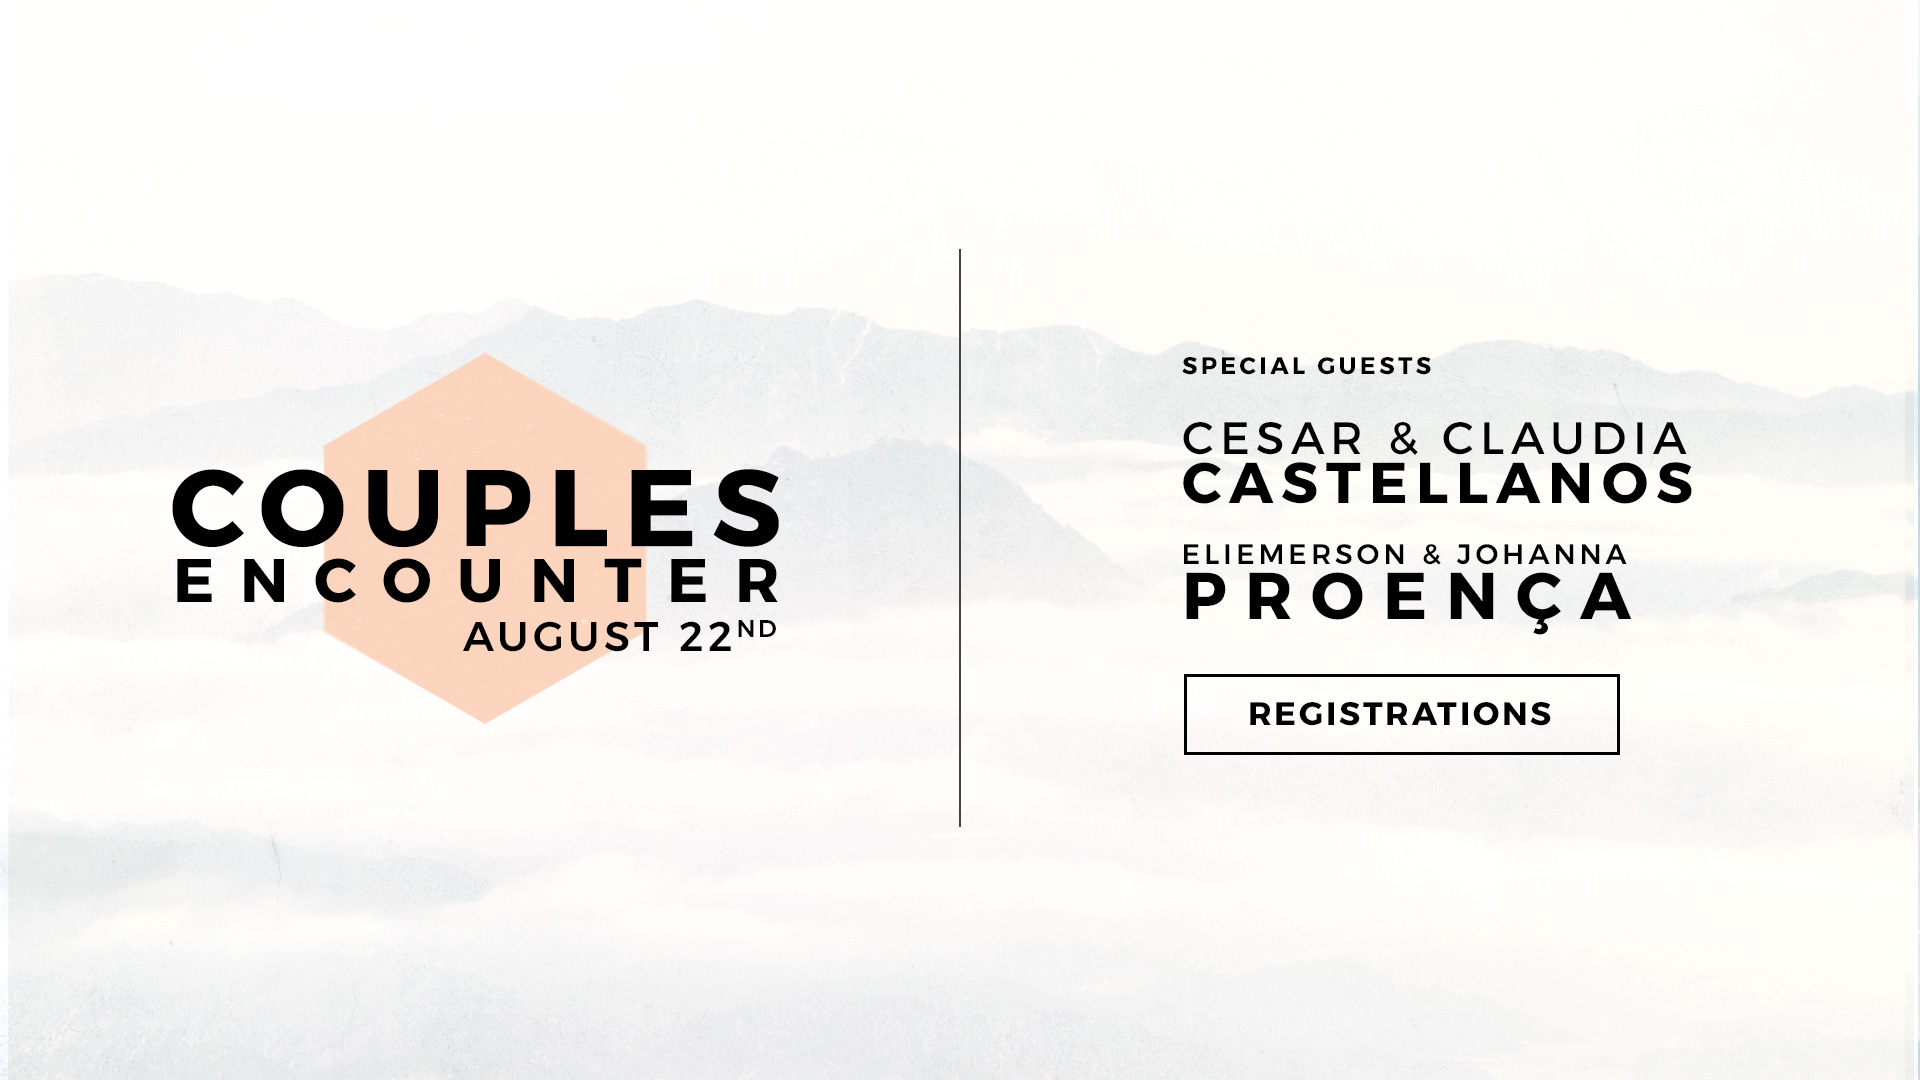 Tickets for Couples Encounter 2018 in Pembroke Pines from ShowClix